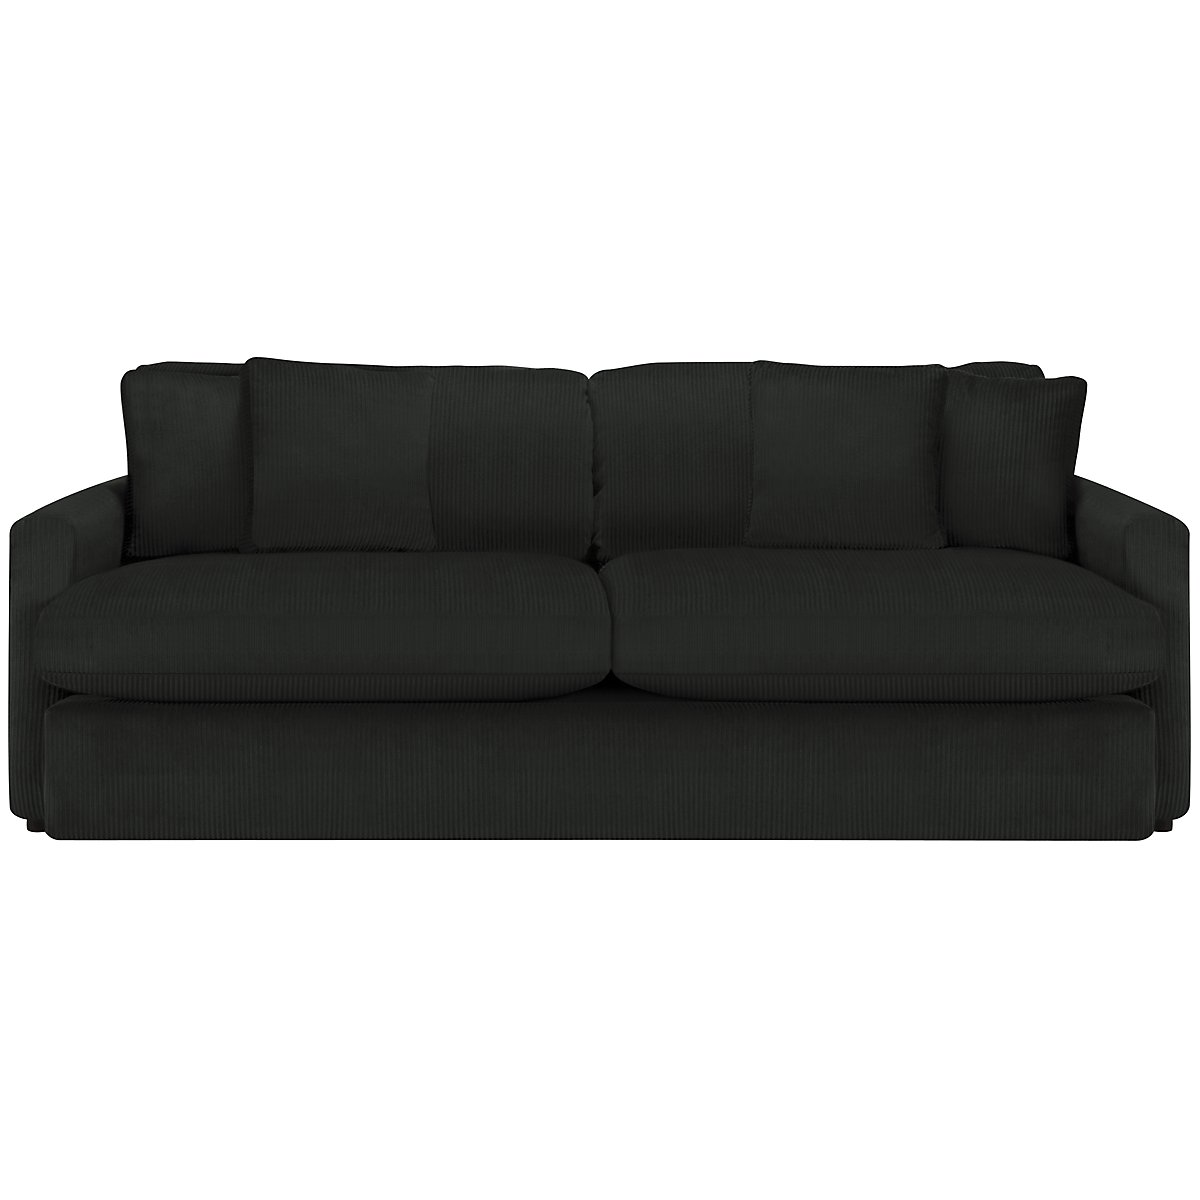 City furniture tara2 dk gray micro sofa for Black and grey couch